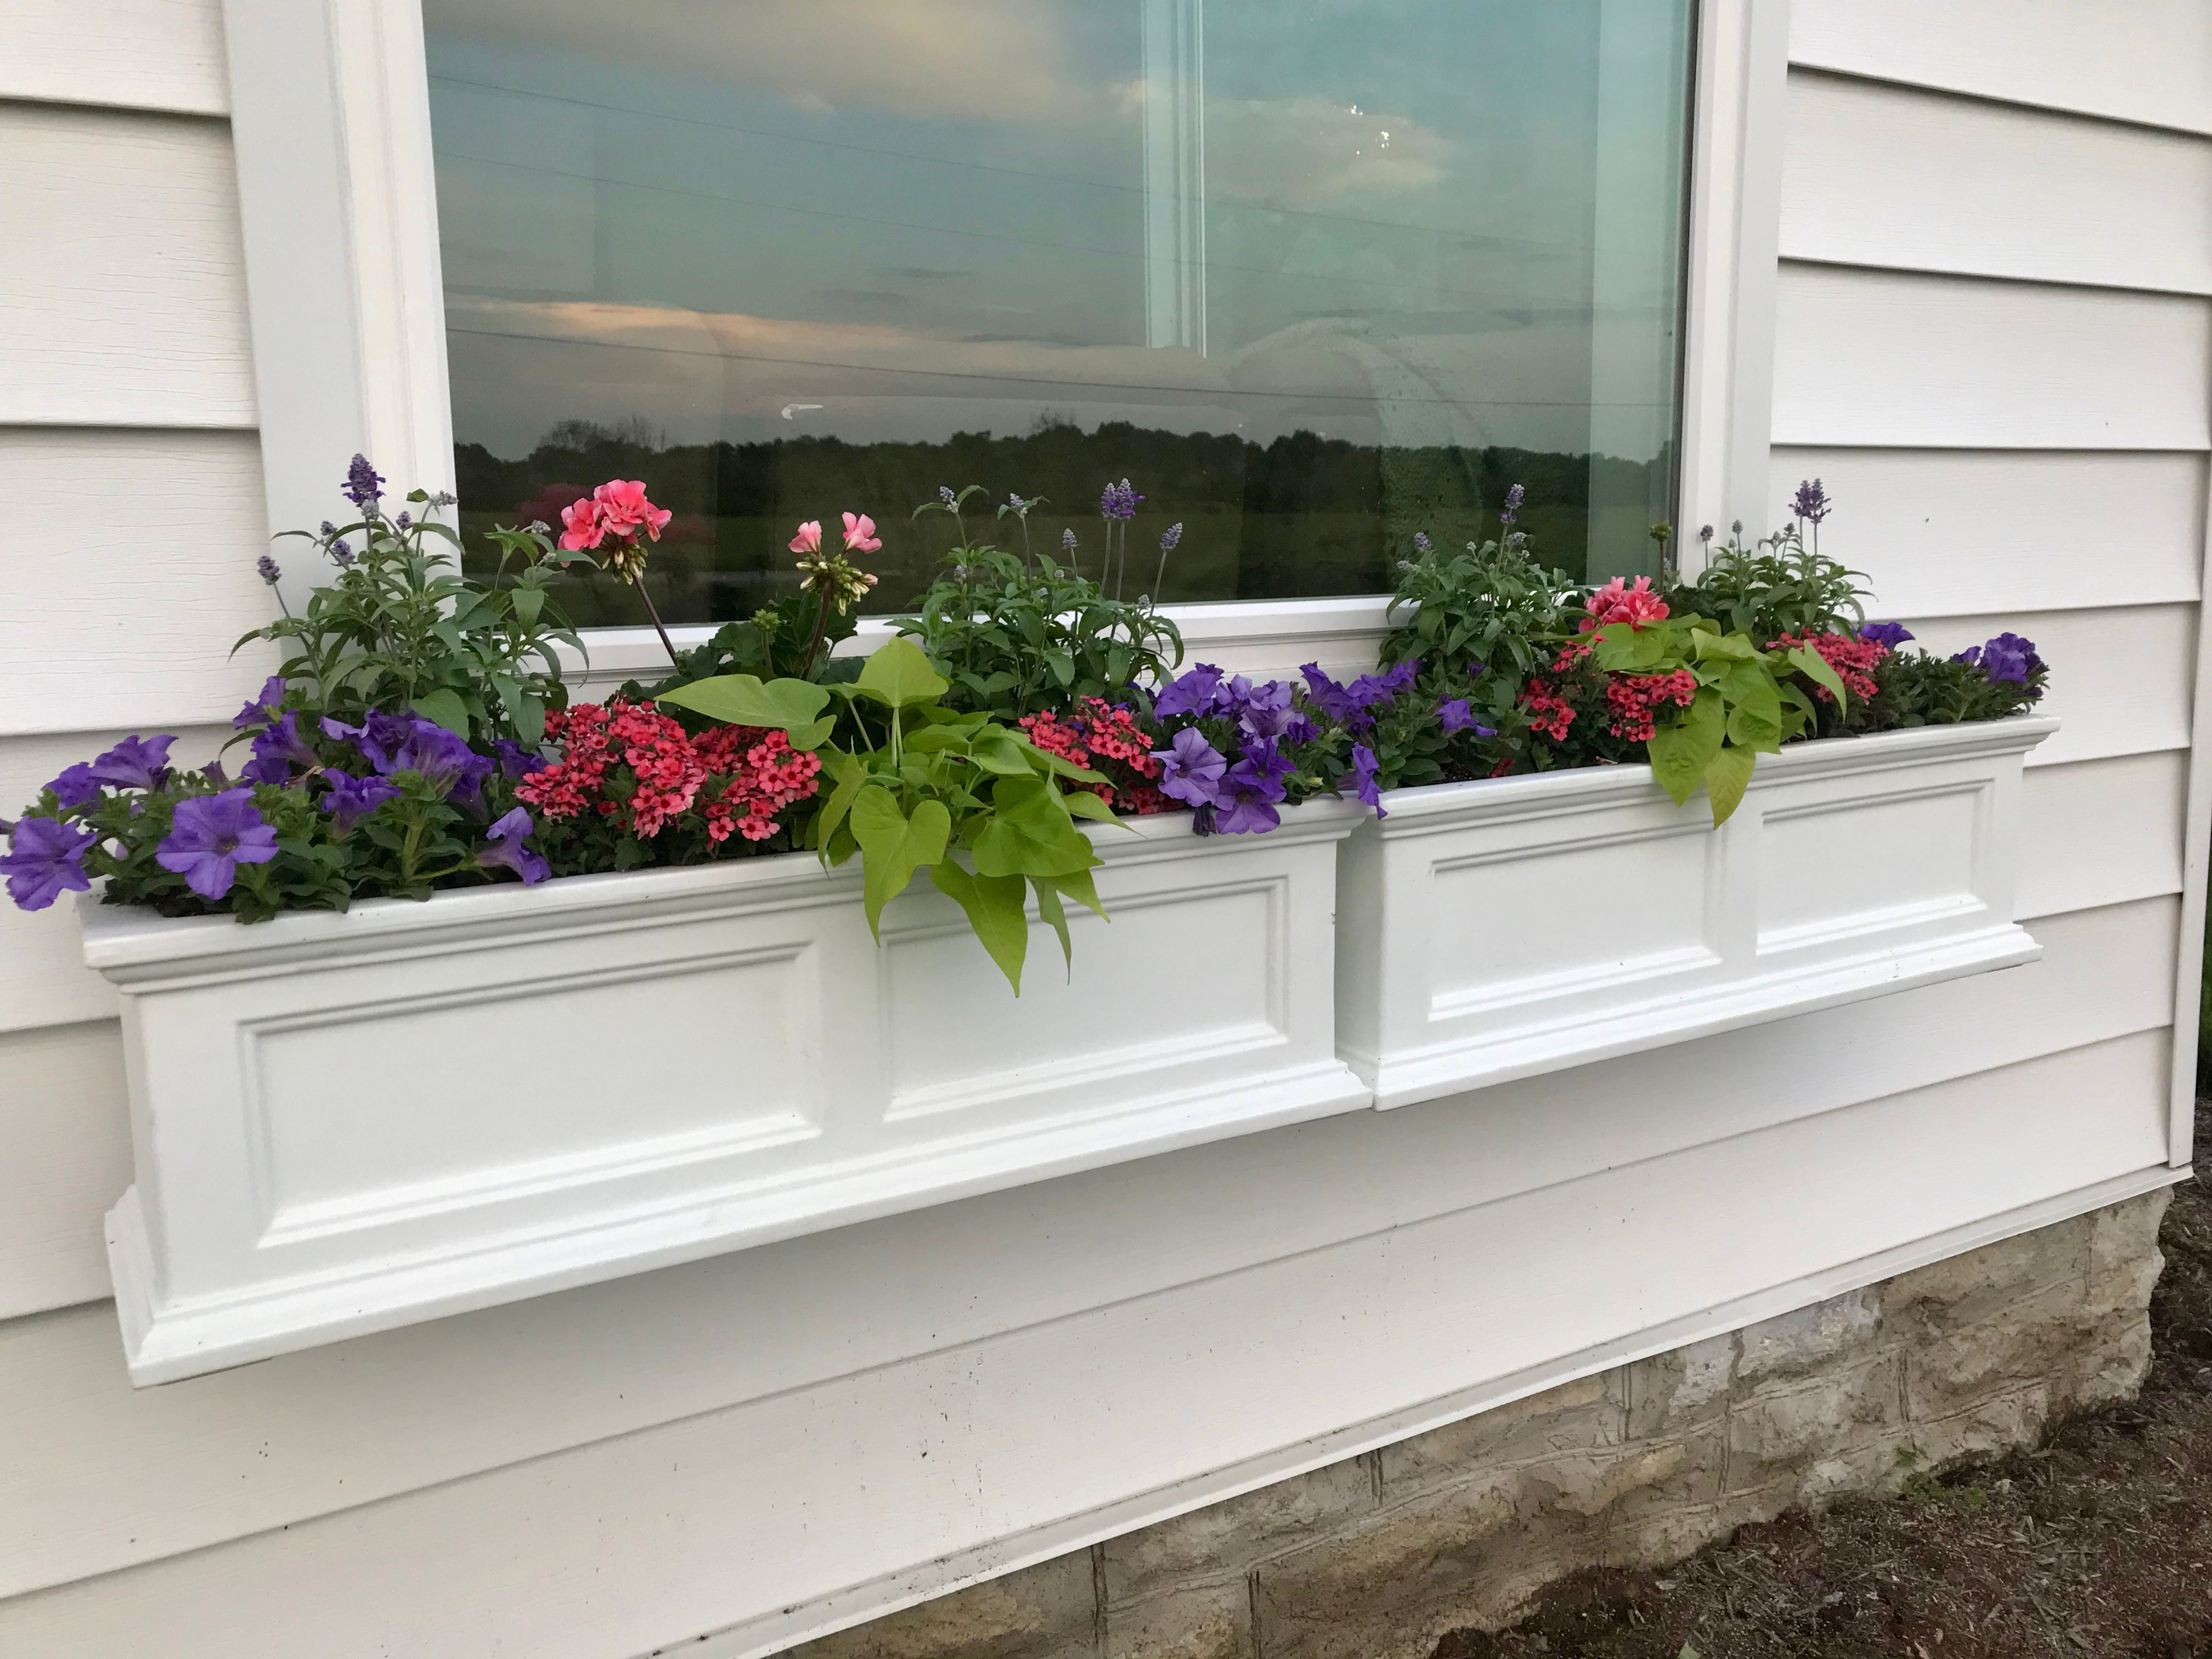 Blog window boxes lawrenceburg florist mccabes greenhouse floral this magic fertilizer is rich in iron and other micro nutients to keep the flowers blooming and keep the foliage a nice deep green color izmirmasajfo